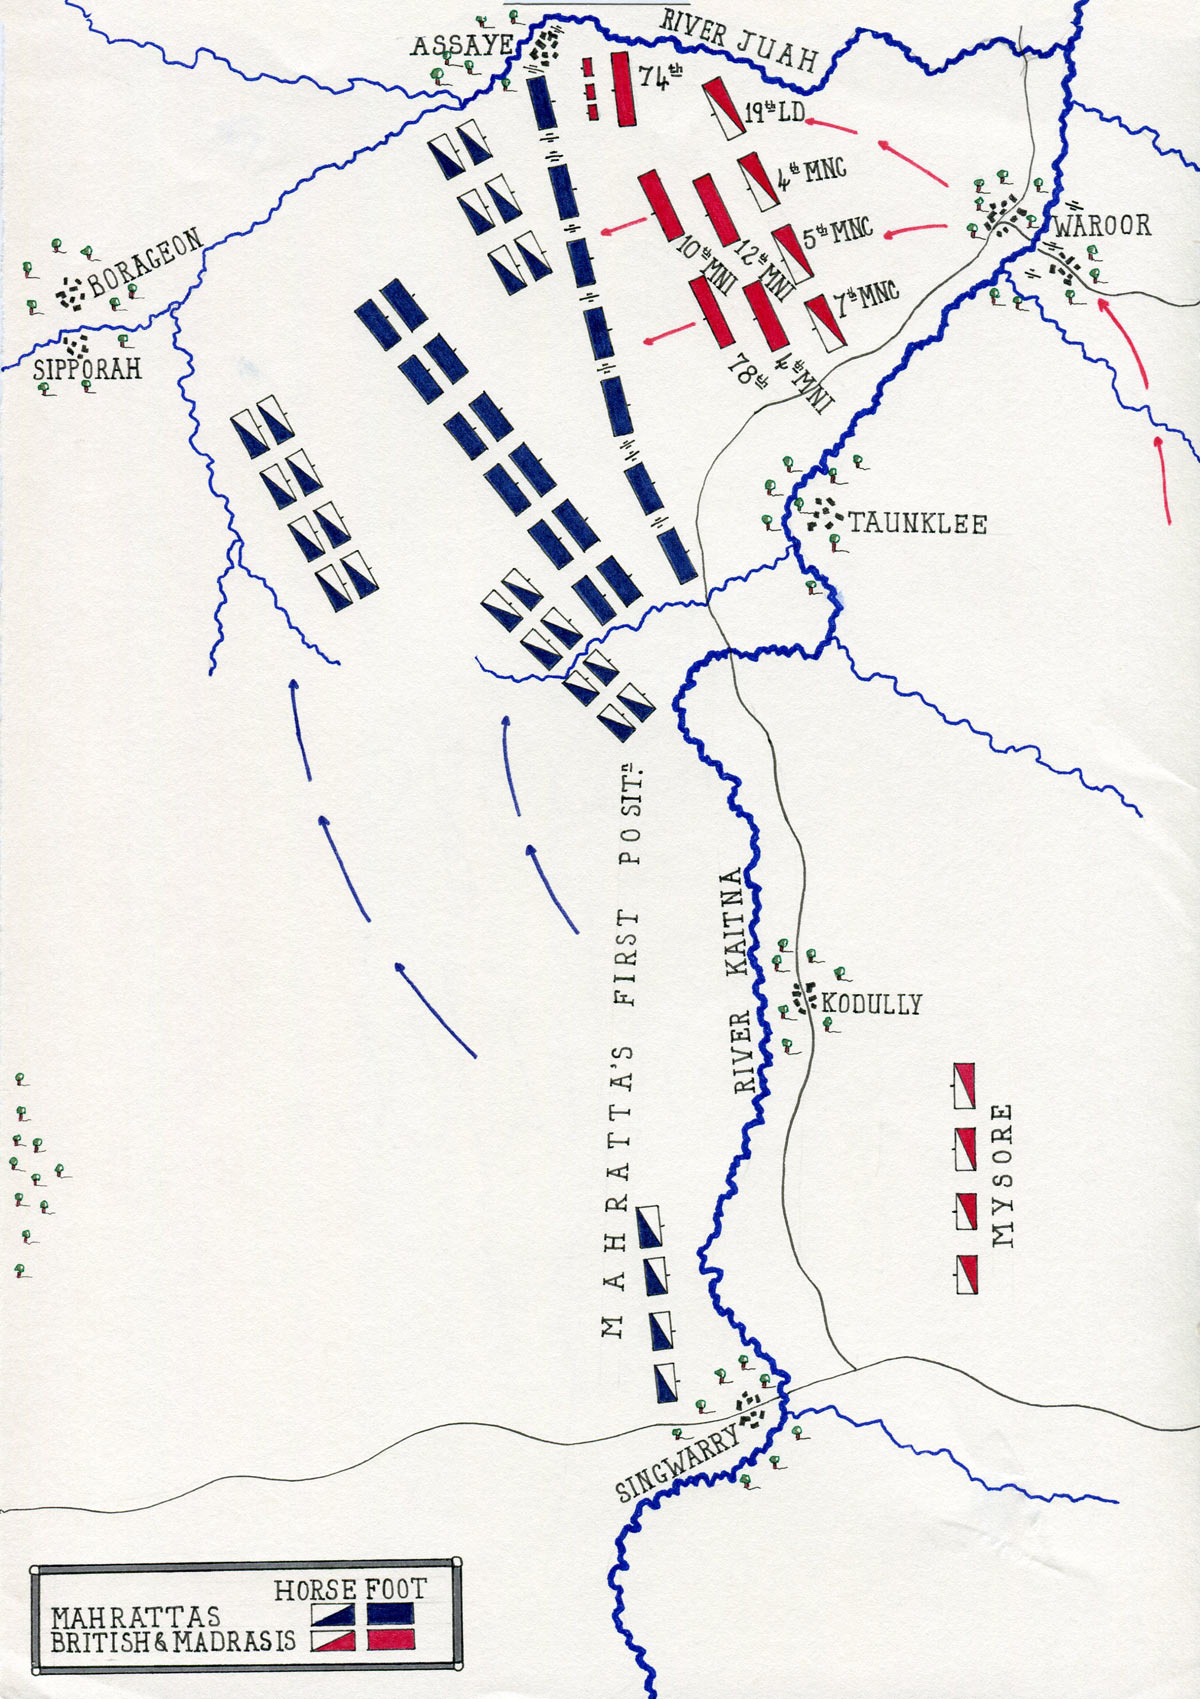 Map of the Battle of Assaye on 23rd September 1803 in the Second Mahratta War in India: map by John Fawkes